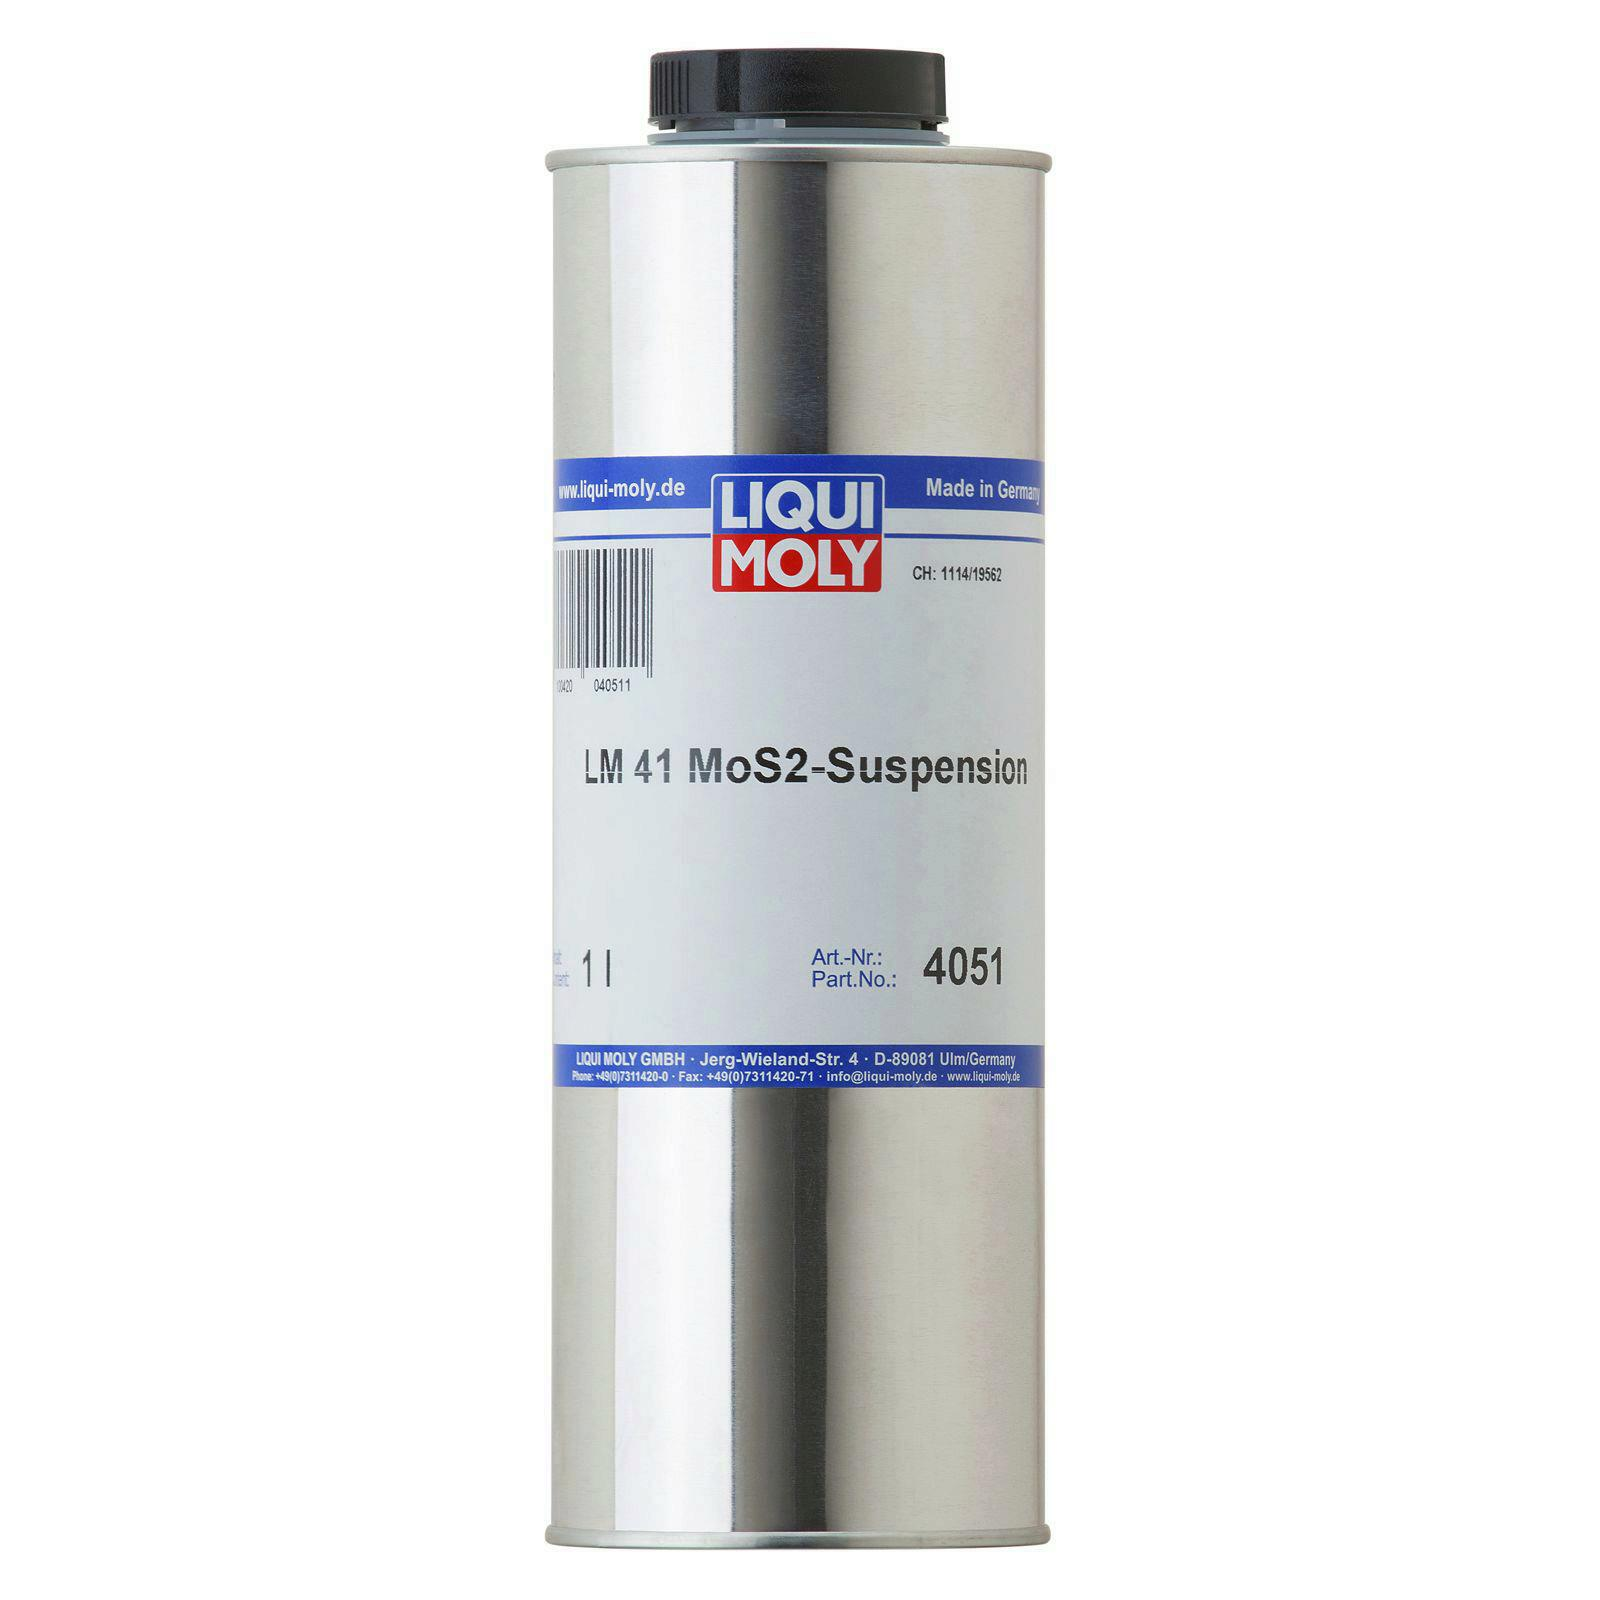 Liqui Moly 41 MoS2-Suspension 1kg